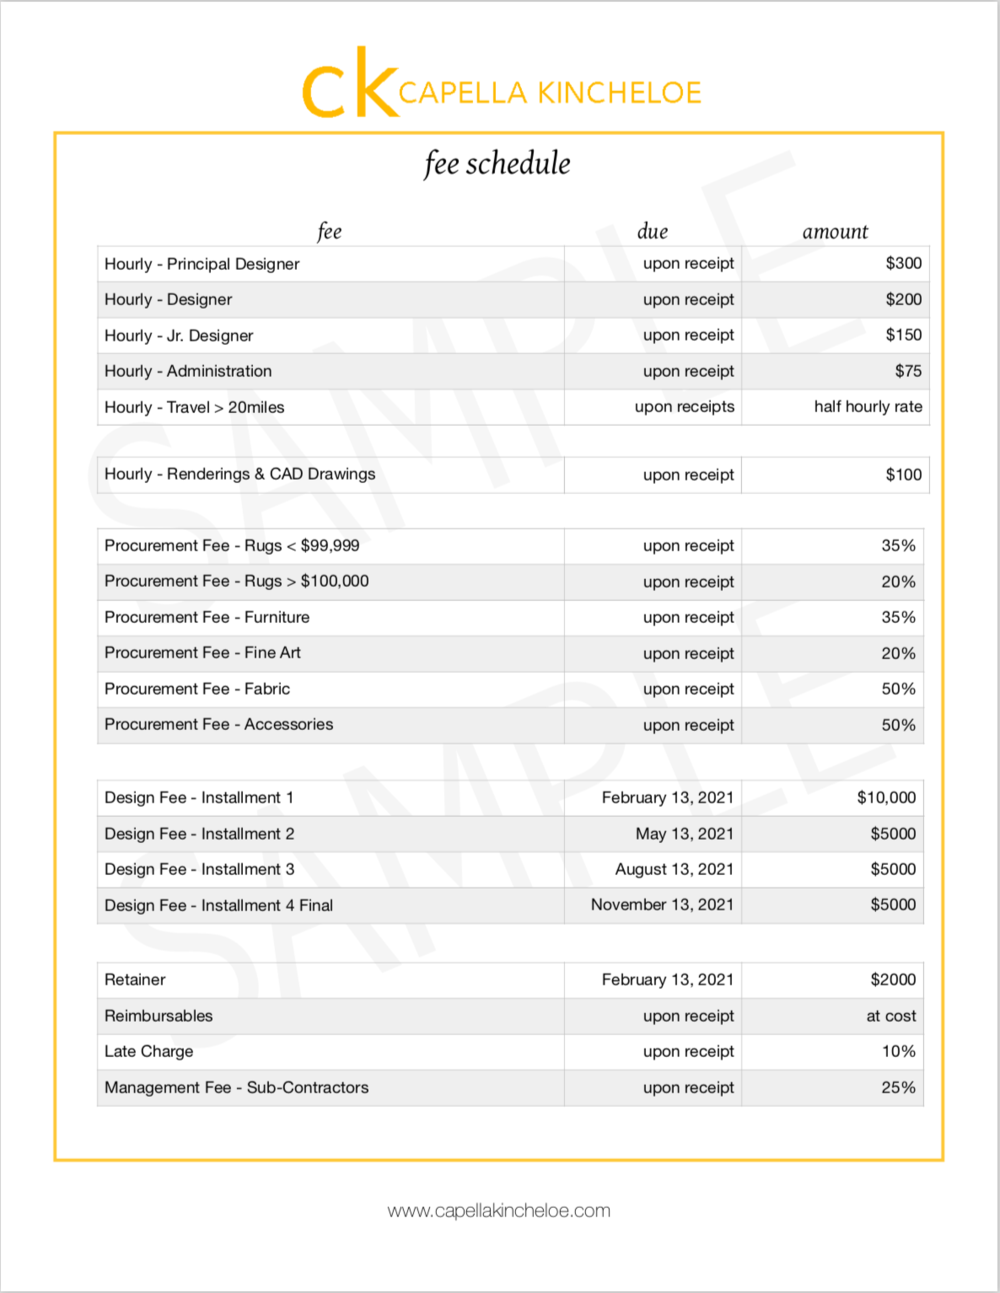 Sample Interior Design Fee Schedule.png